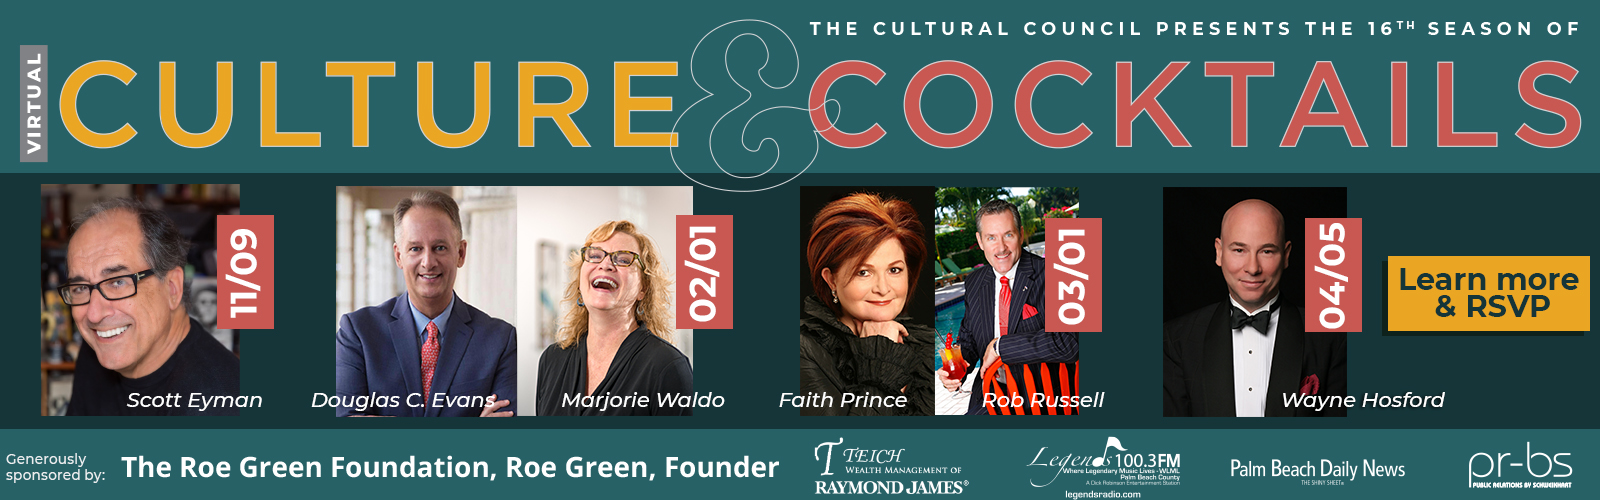 Culture & Cocktails 2020-2021 season lineup